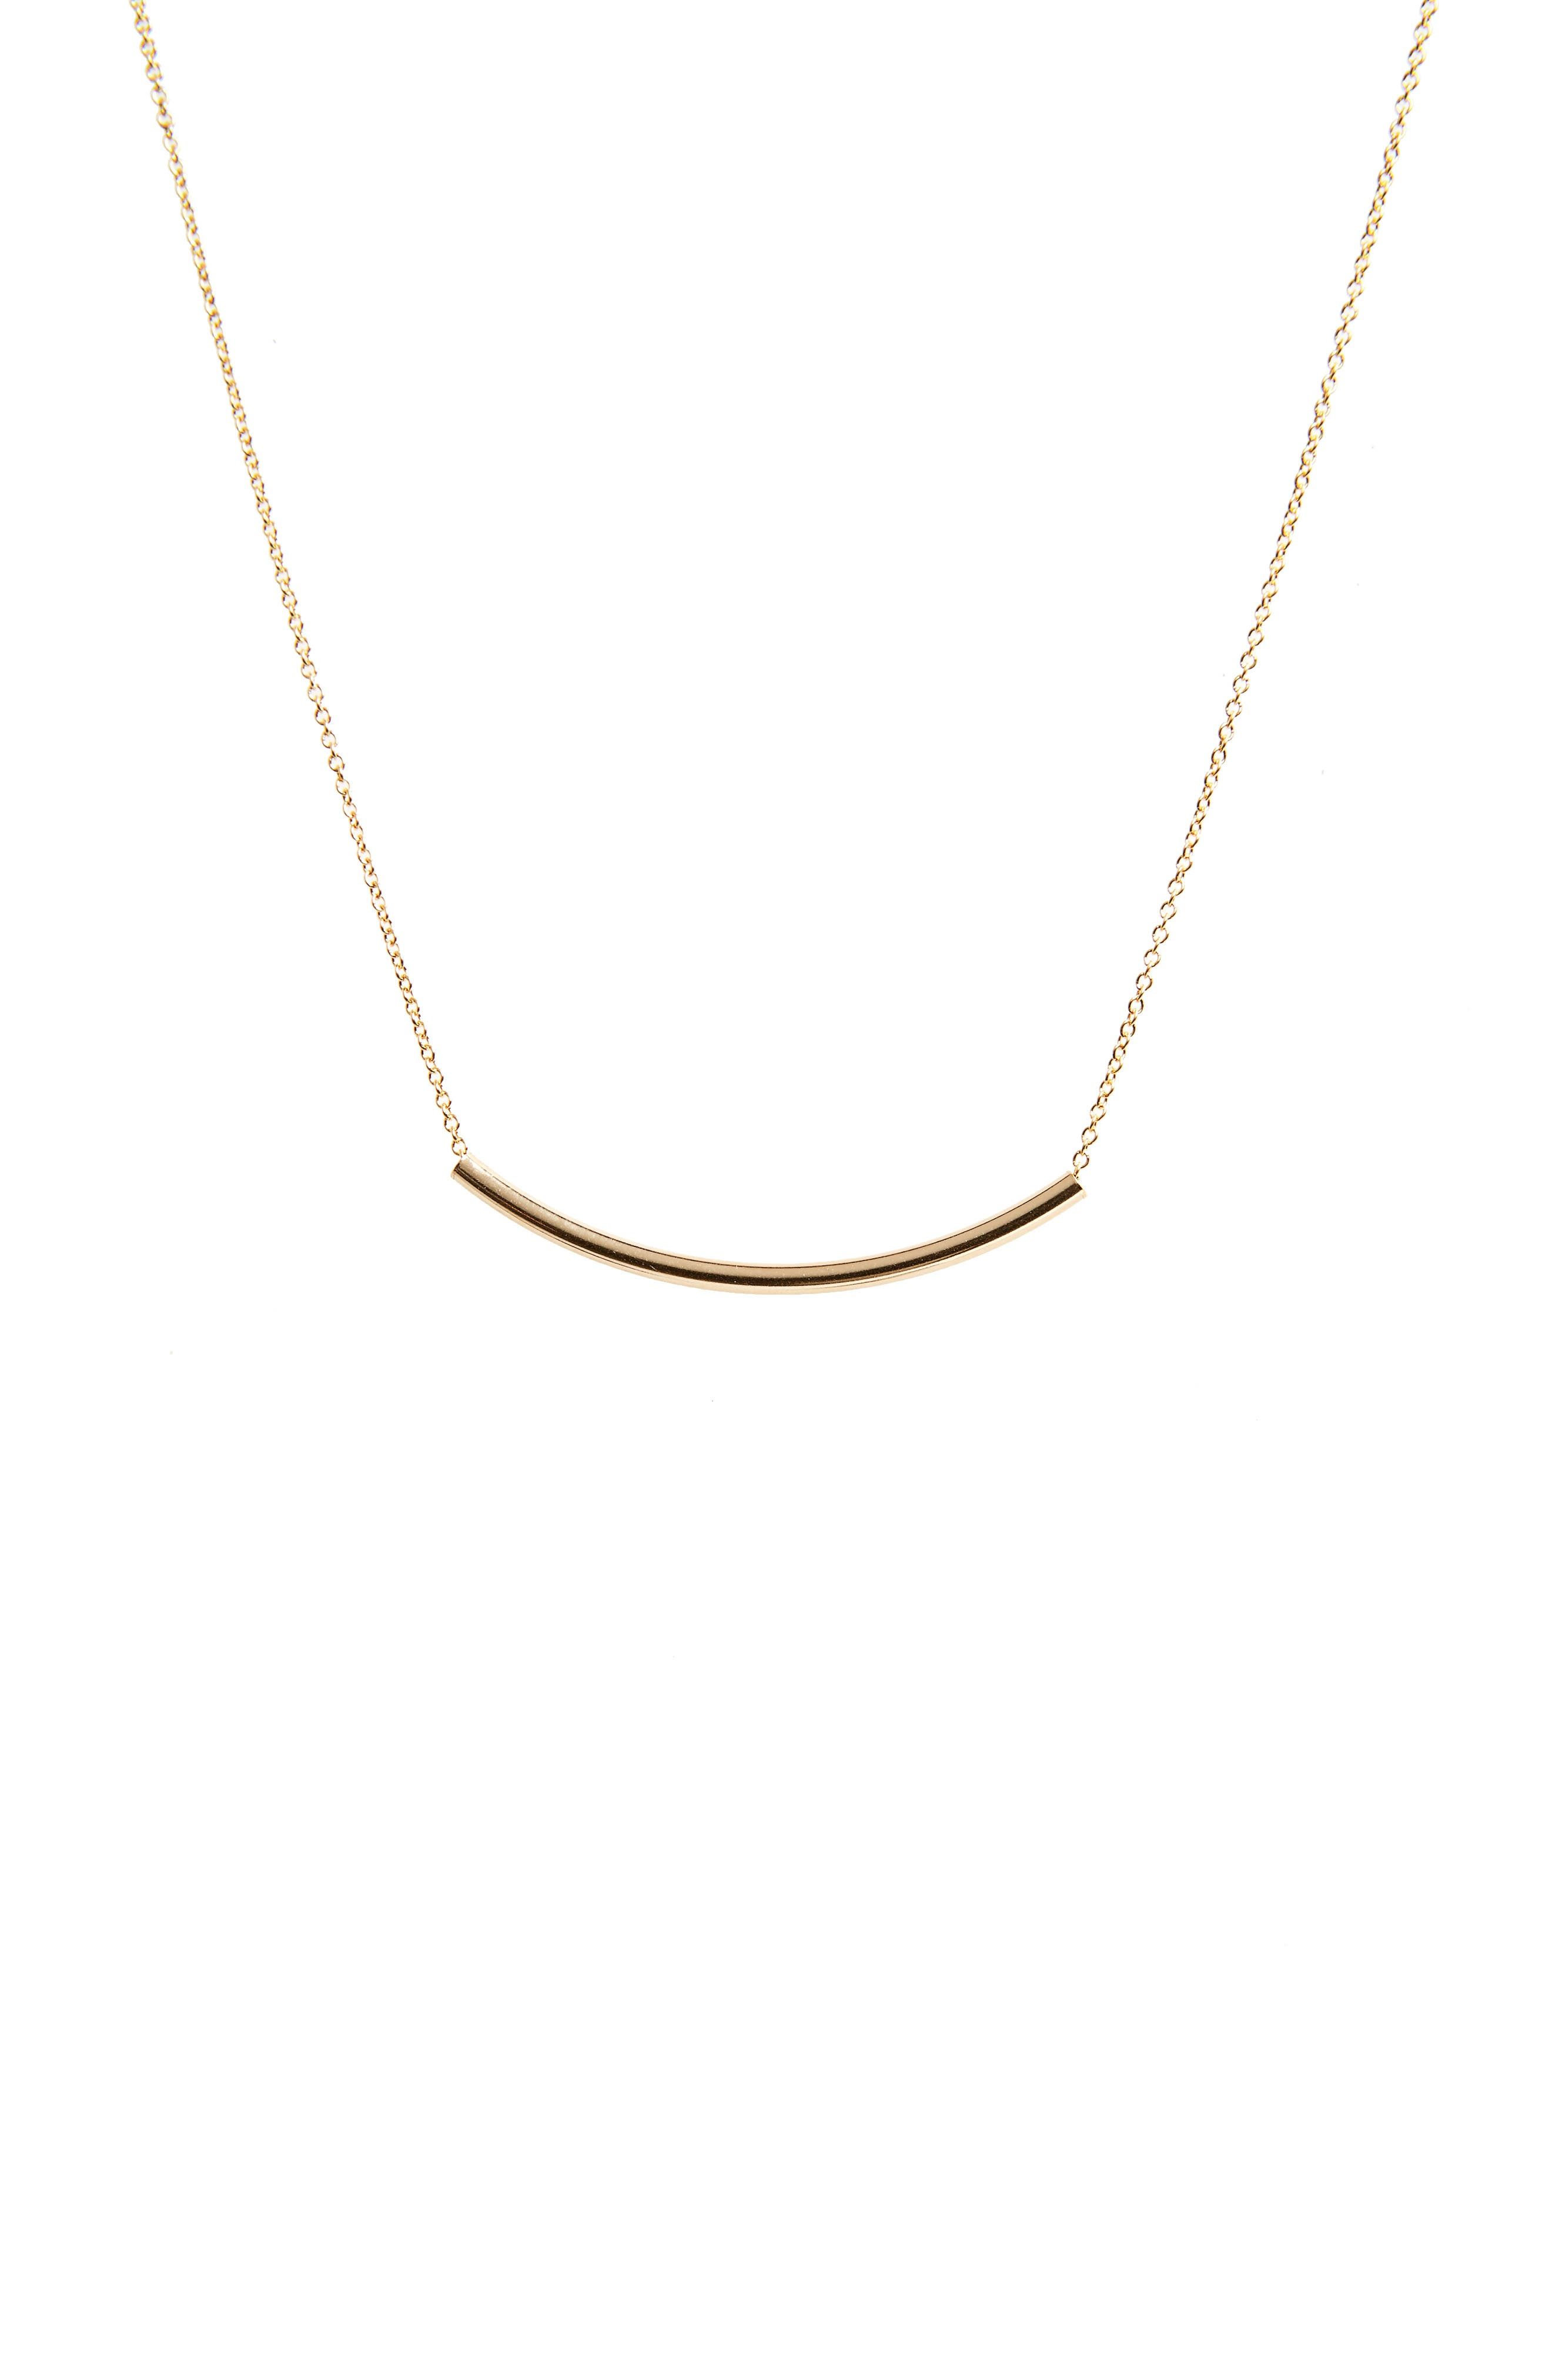 Balance Tube Chain Necklace,                             Alternate thumbnail 2, color,                             Gold